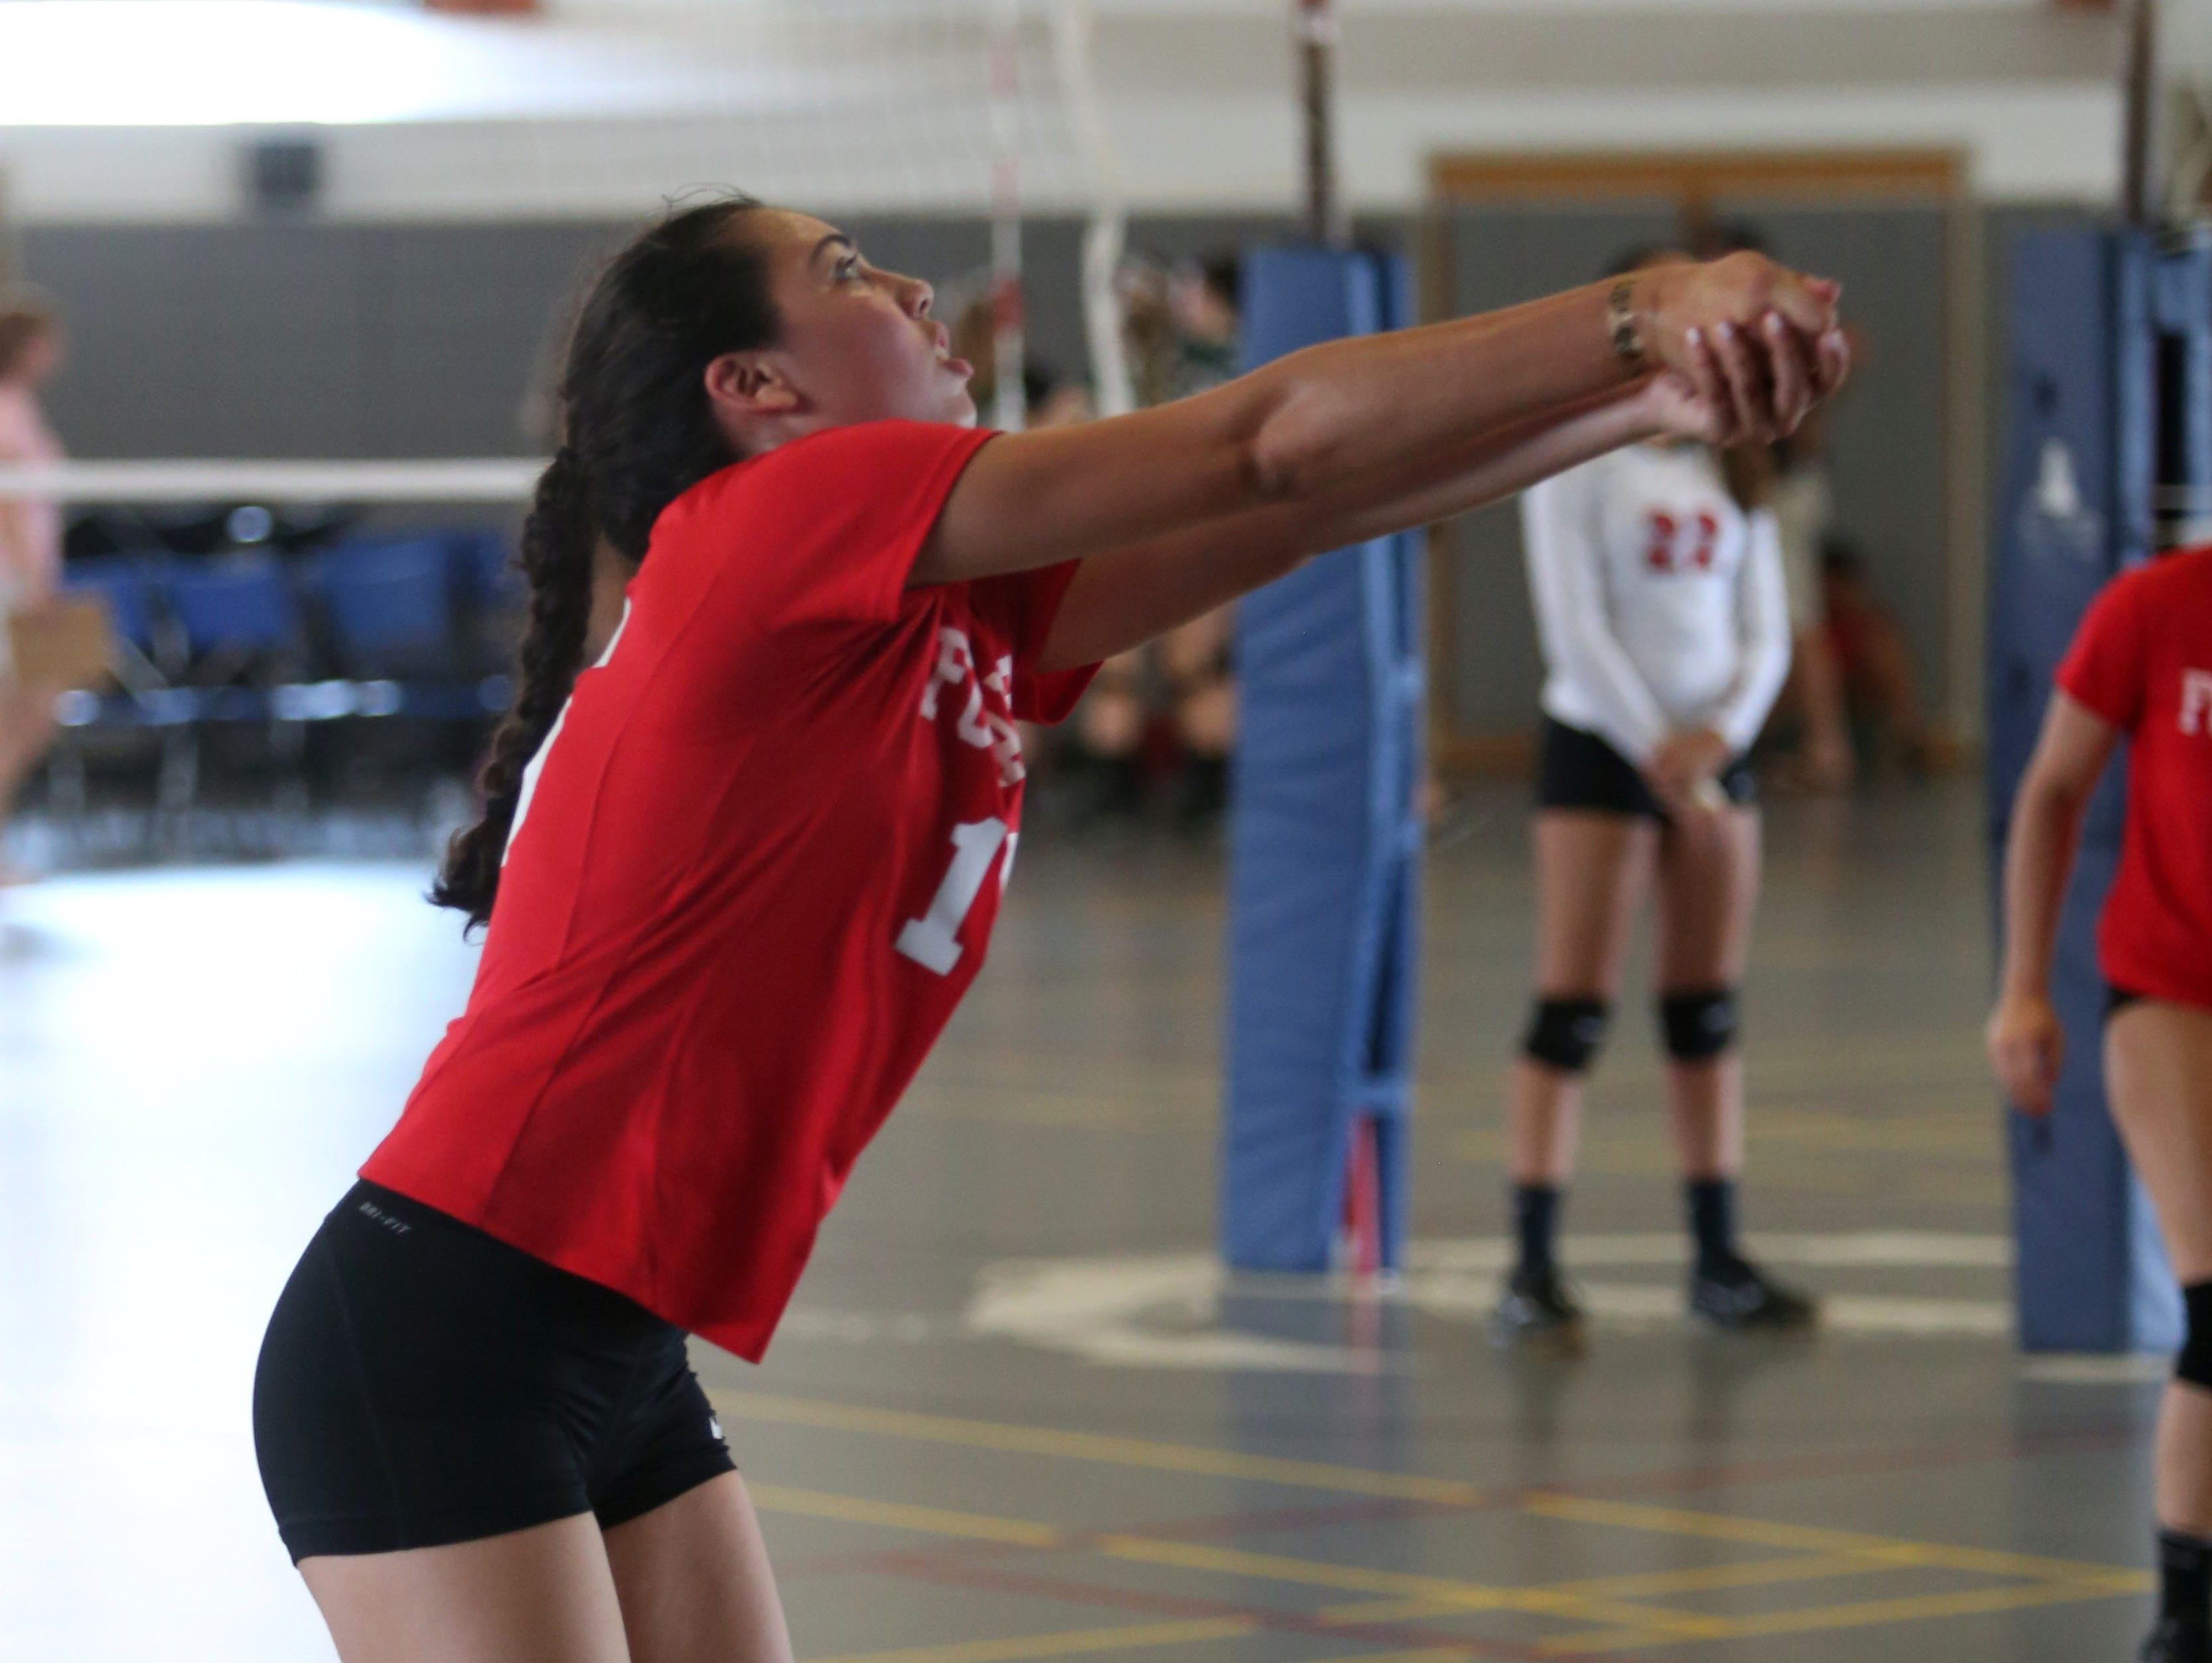 Caroline Scanlan with the Fox Lane High School Volleyball team, returns a shot against Millbrook during the Breast Cancer Awareness tournament at Hendrick Hudson High School in Montrose, Sept, 10, 2016.